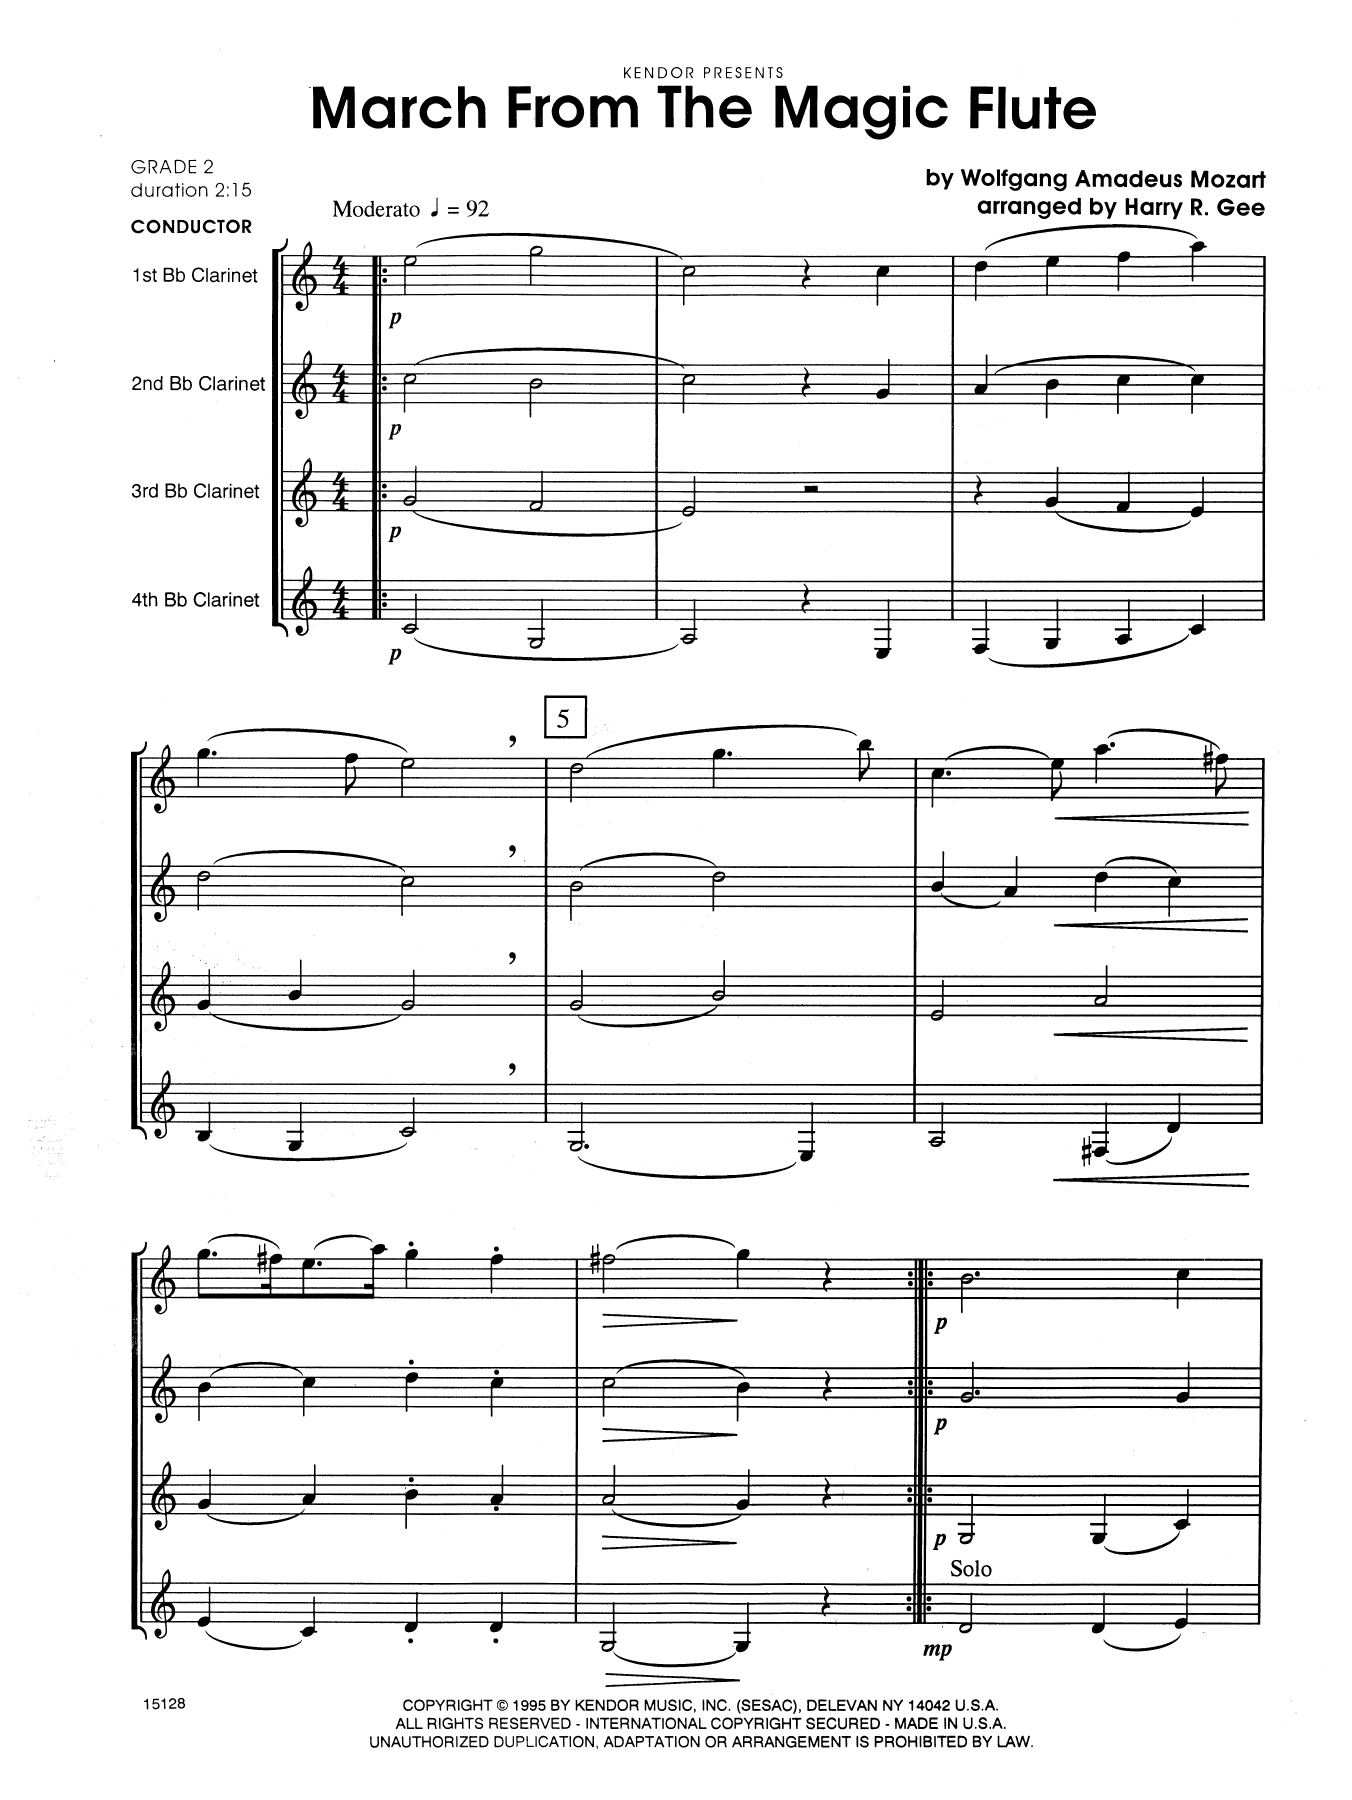 March From The Magic Flute (COMPLETE) sheet music for four clarinets by Harry R. Gee